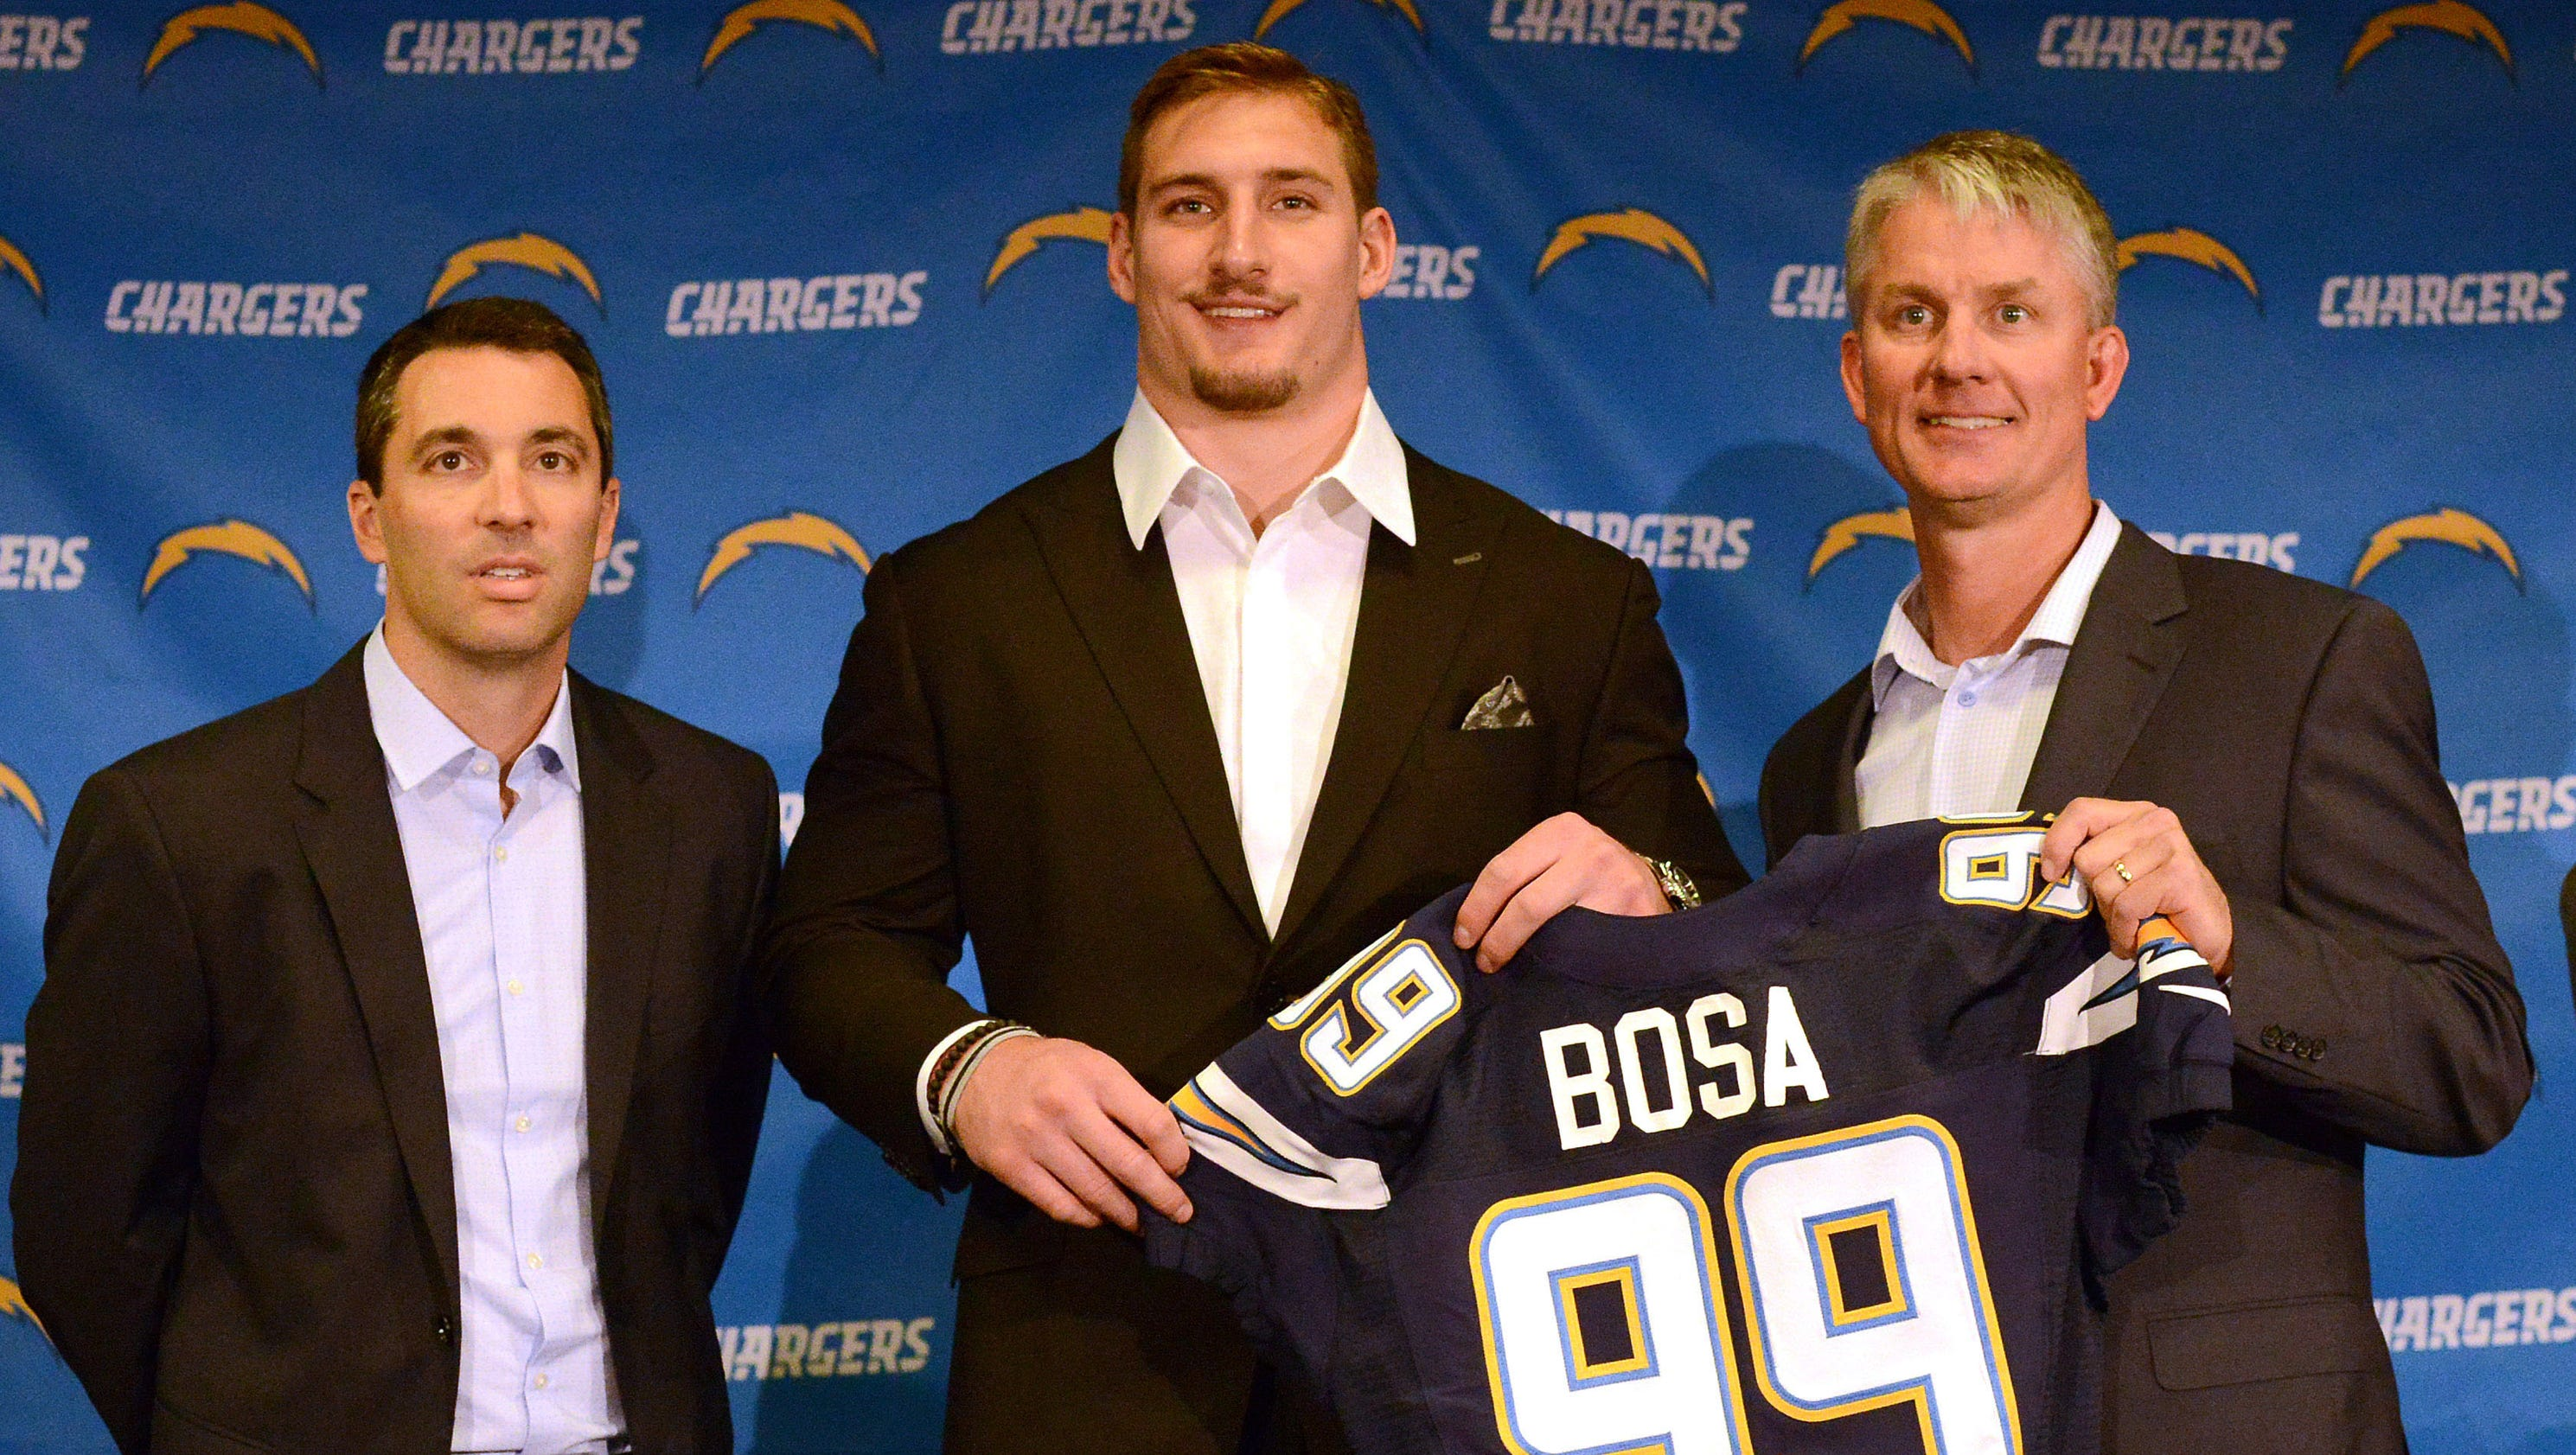 636076604273644267-usp-nfl-san-diego-chargers-joey-bosa-press-confer-81541133